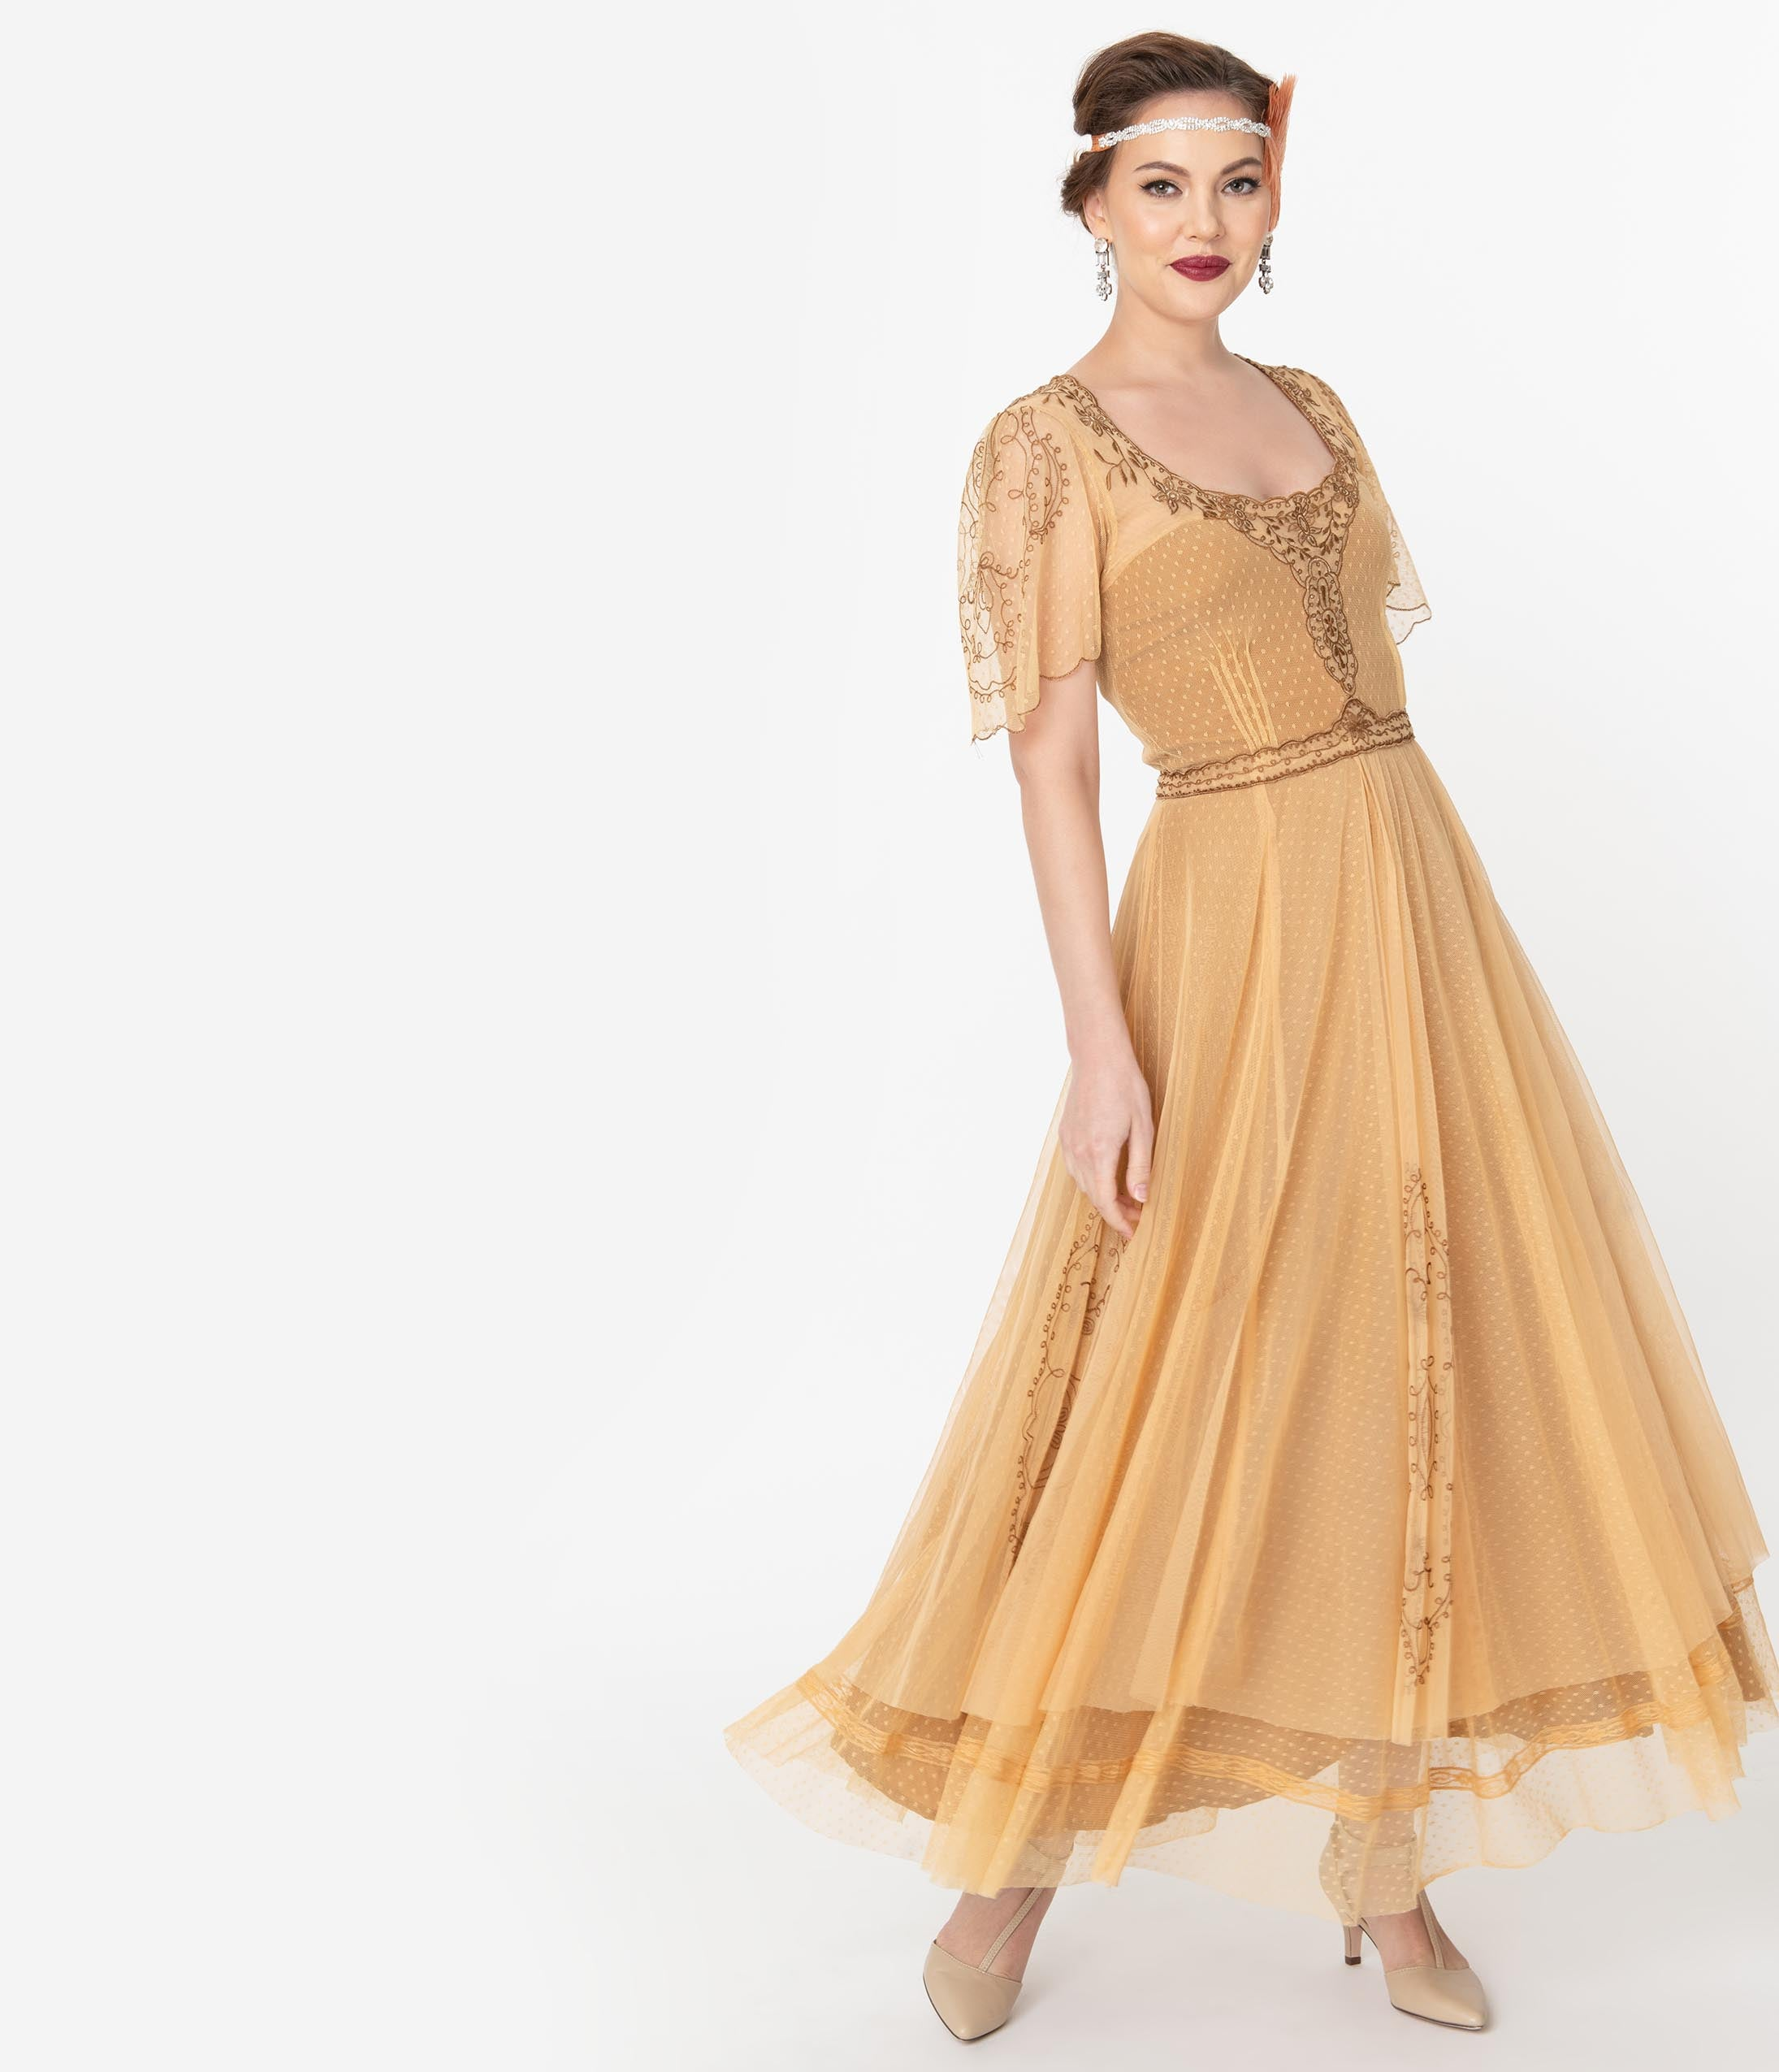 1920s Day / House Dresses and Aprons Vintage Style Gold Embroidered Mesh Edwardian Gown $299.00 AT vintagedancer.com